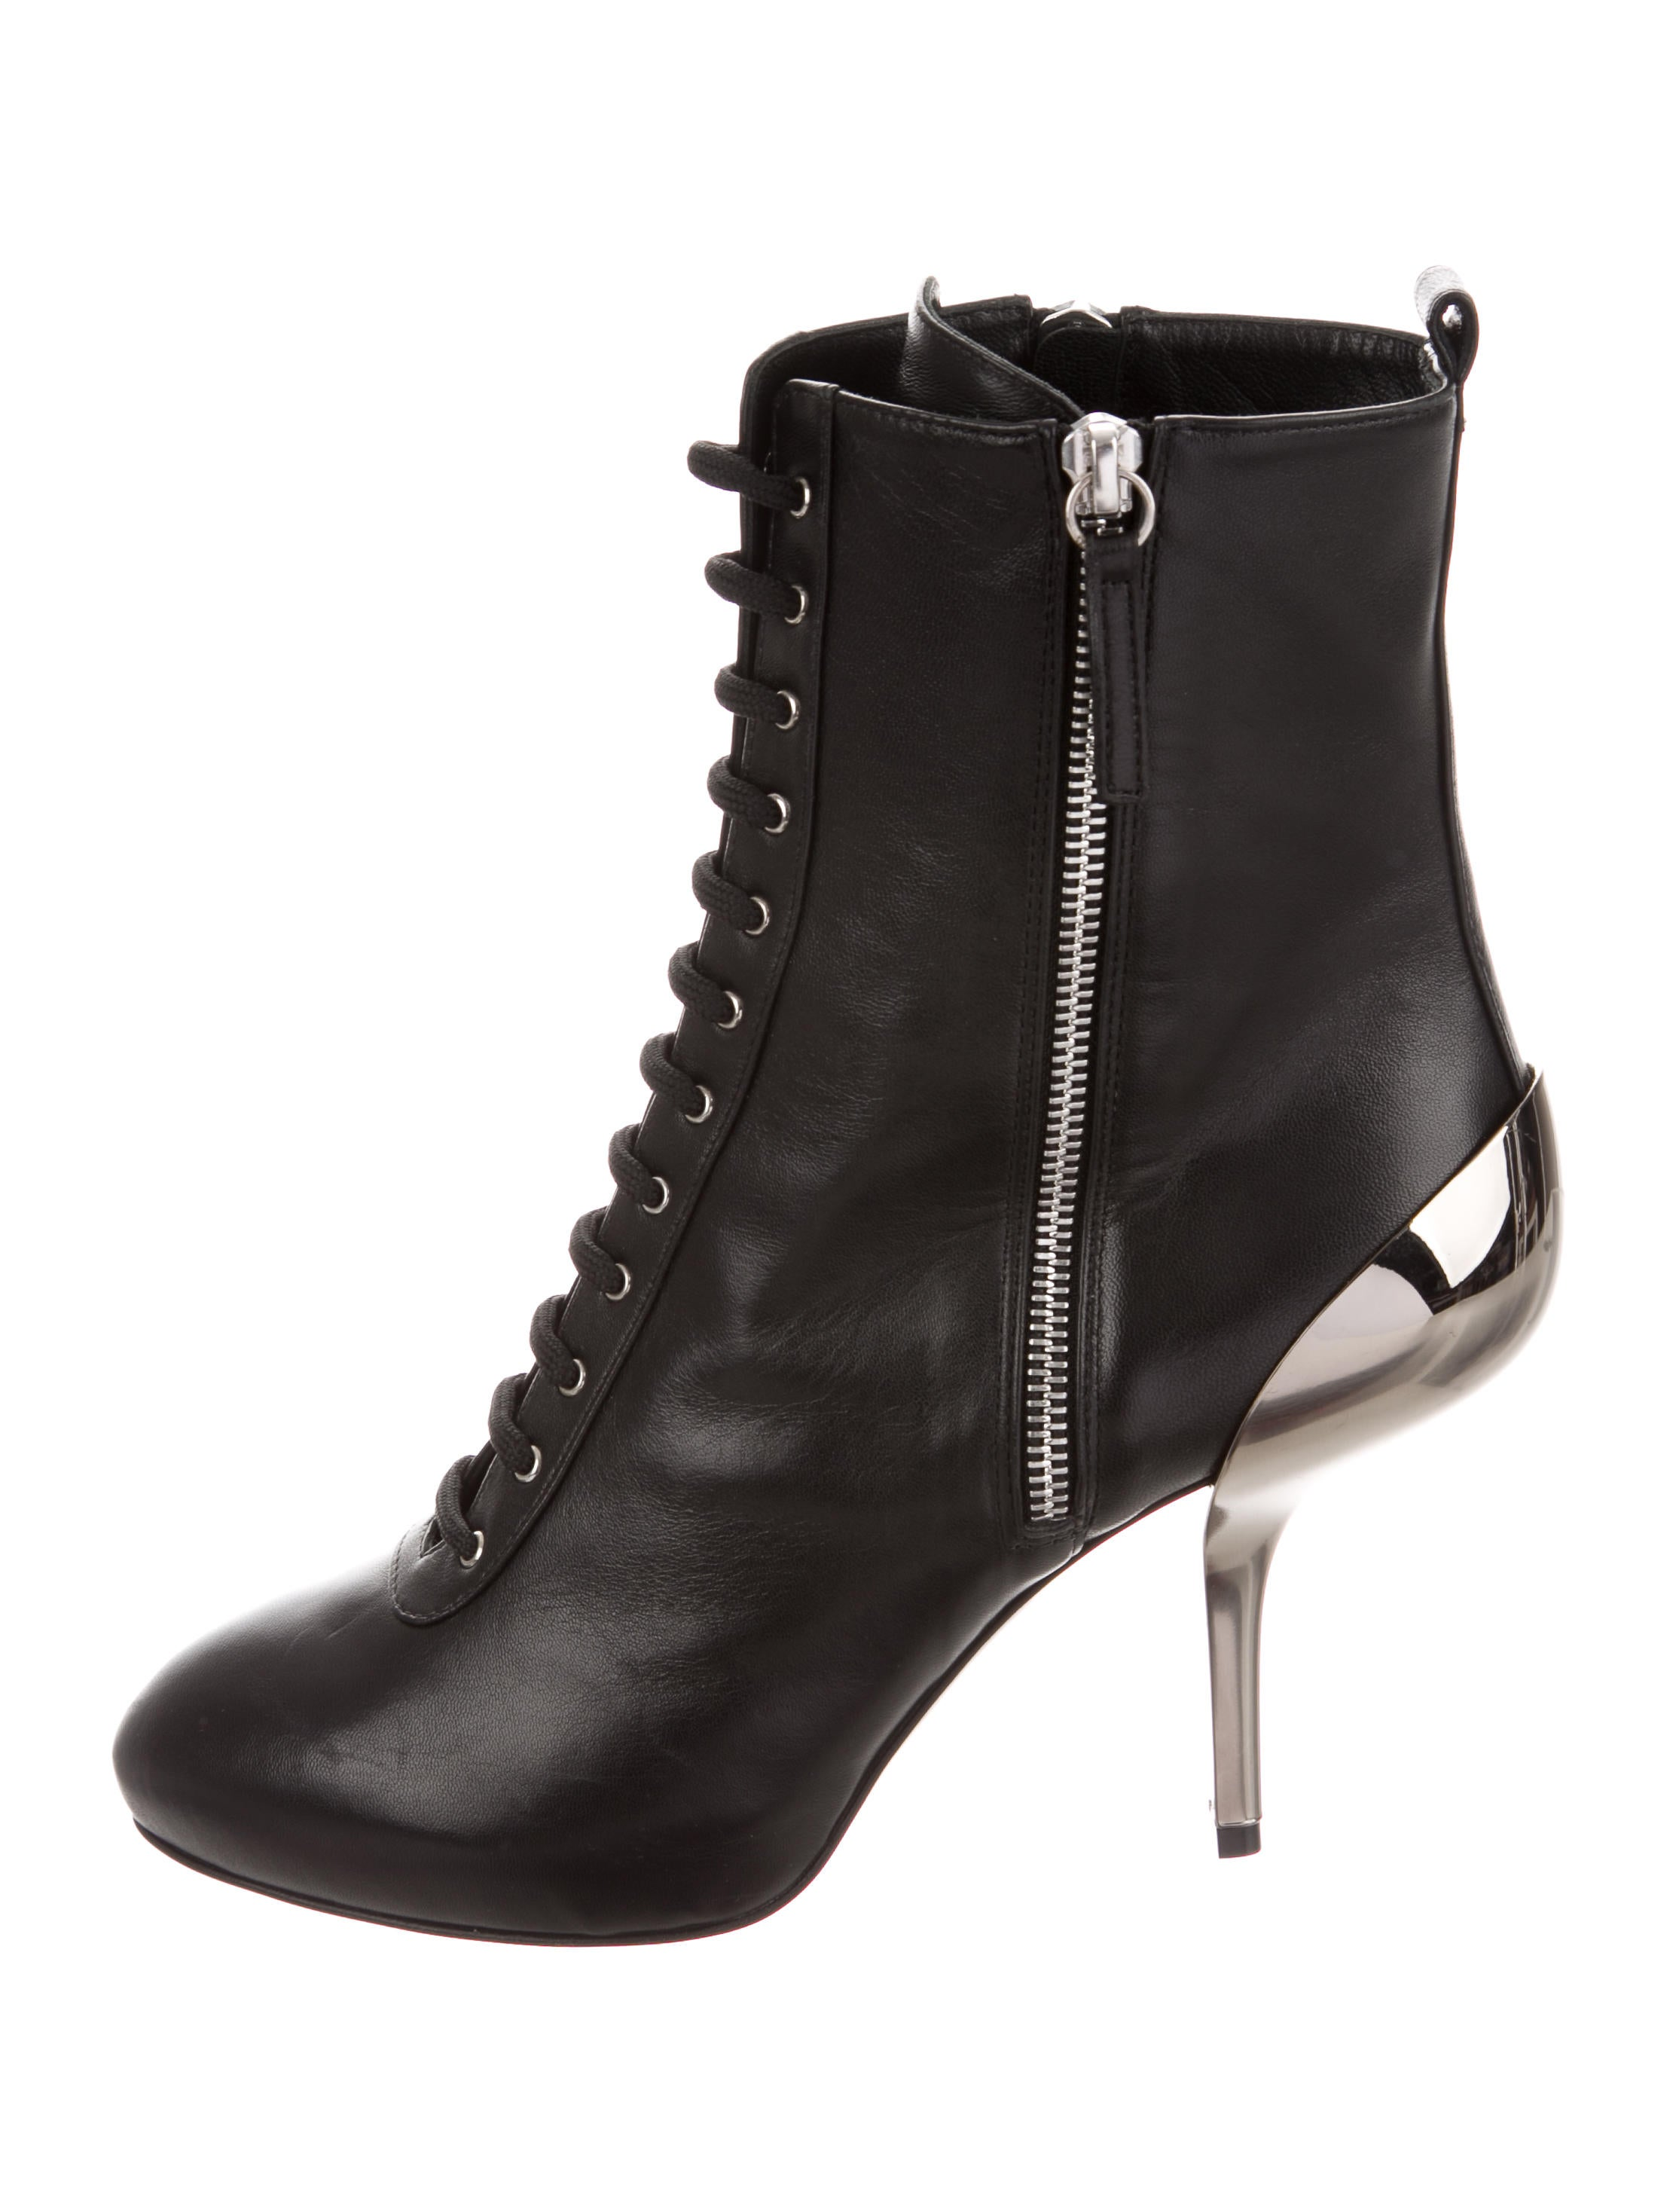 Giuseppe Zanotti Leather Ankle Boots w/ Tags discount with mastercard ey5QPPE8